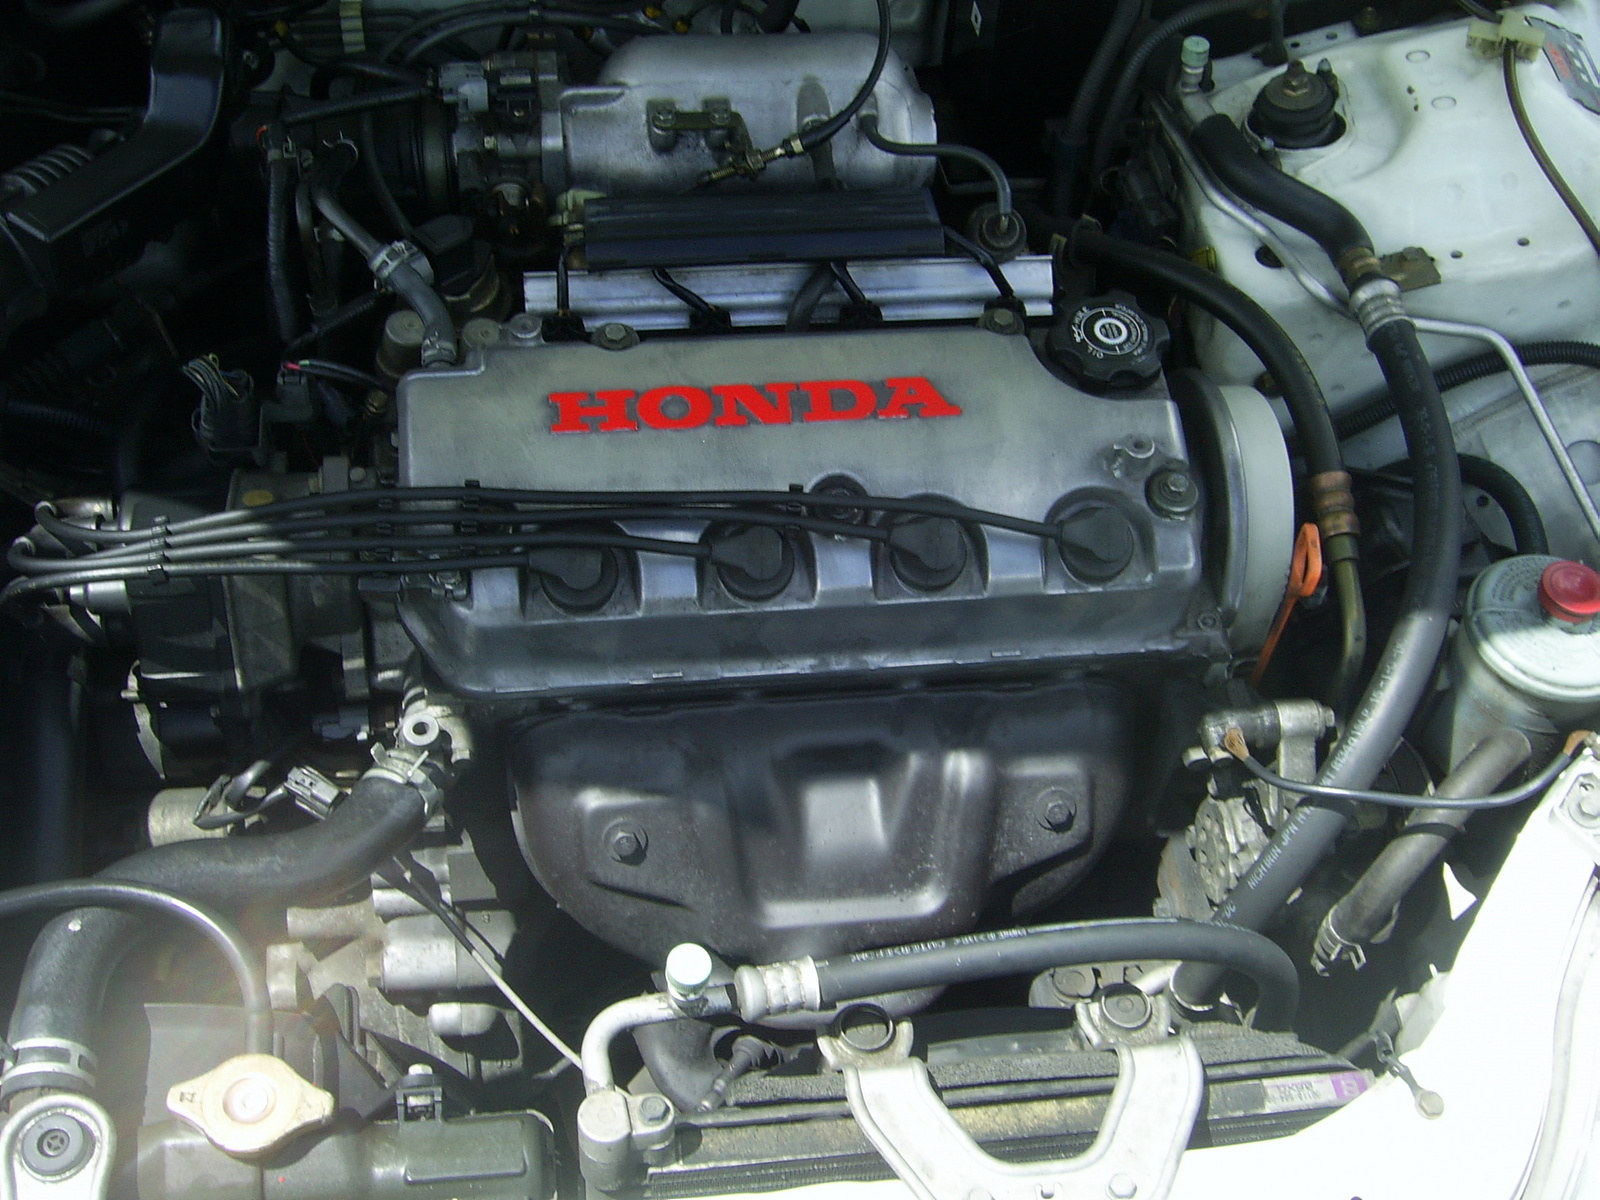 Honda Civic Questions - What do you have? - CarGurus